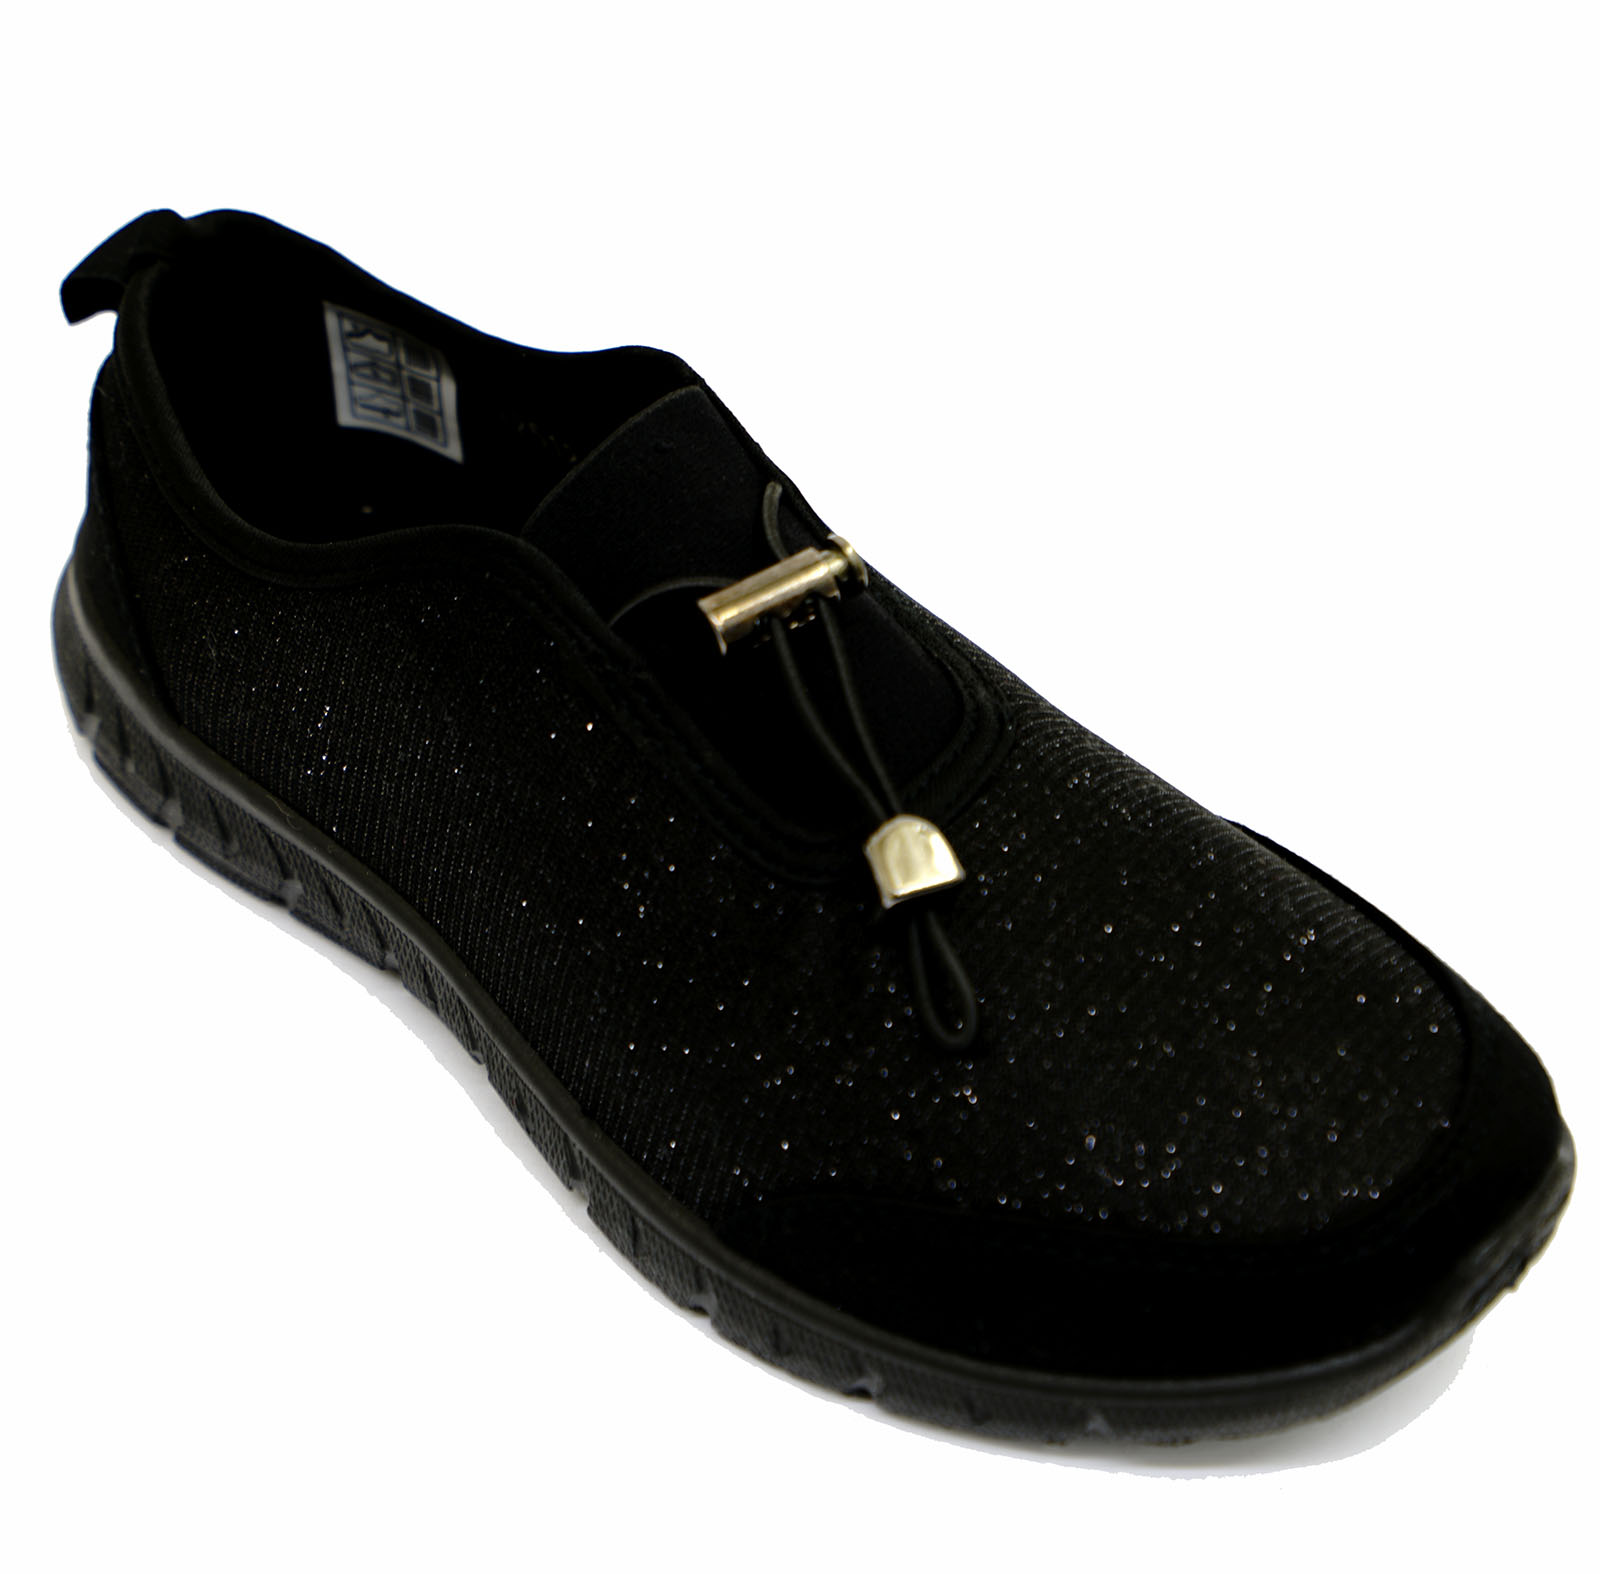 thumbnail 10 - LADIES-BLACK-SLIP-ON-COMFORT-MEMORY-FOAM-TRAINER-PLIMSOLL-CASUAL-PUMPS-SHOES-3-9